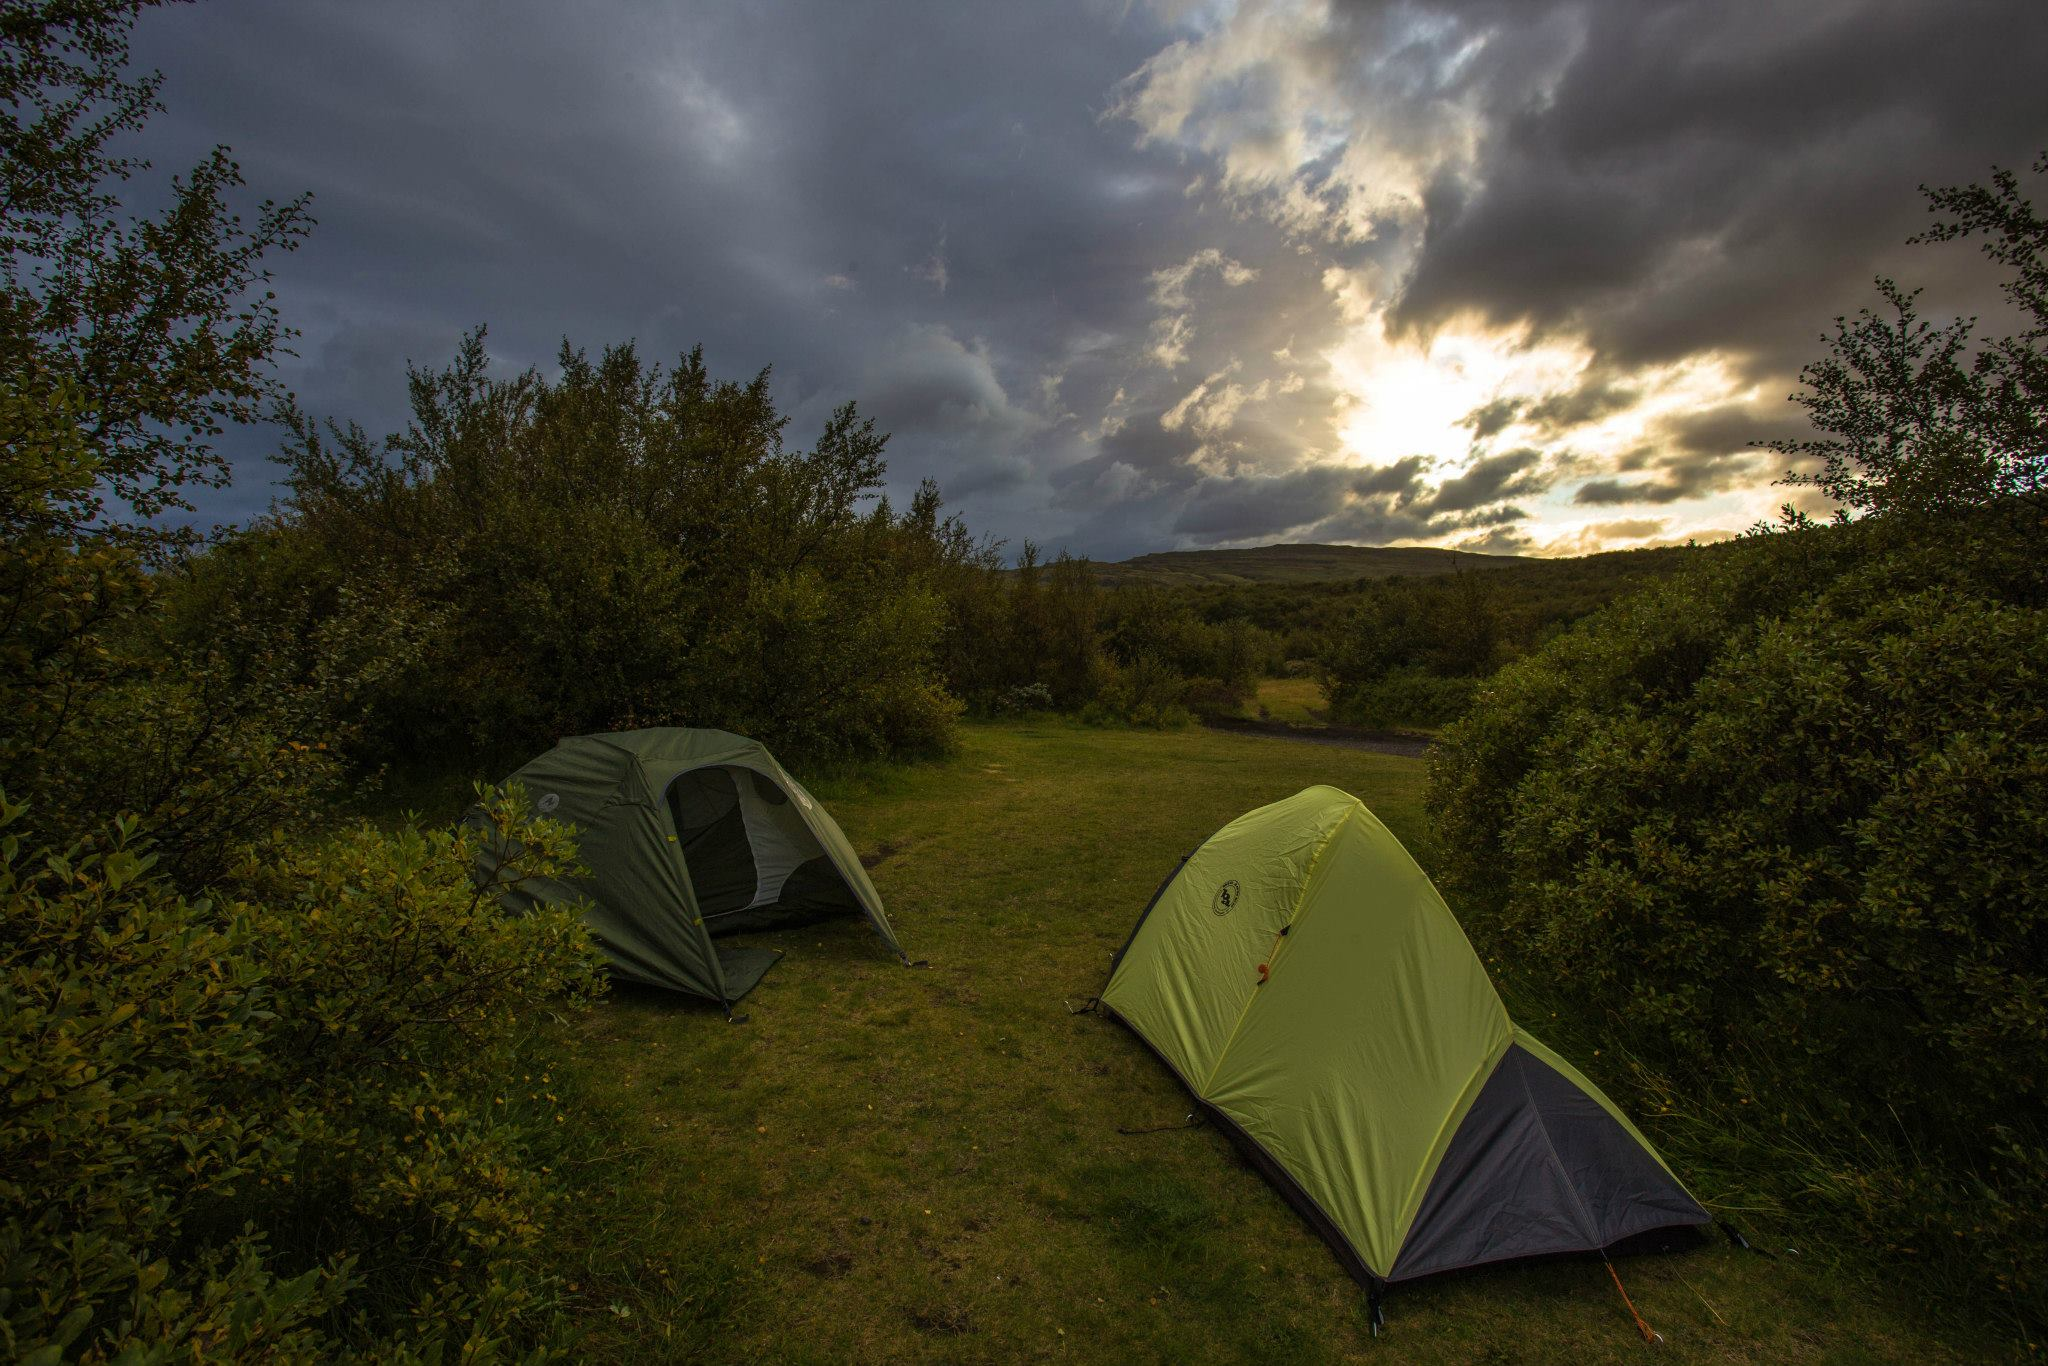 camping iceland dean chytraus thisworldexists this world exists